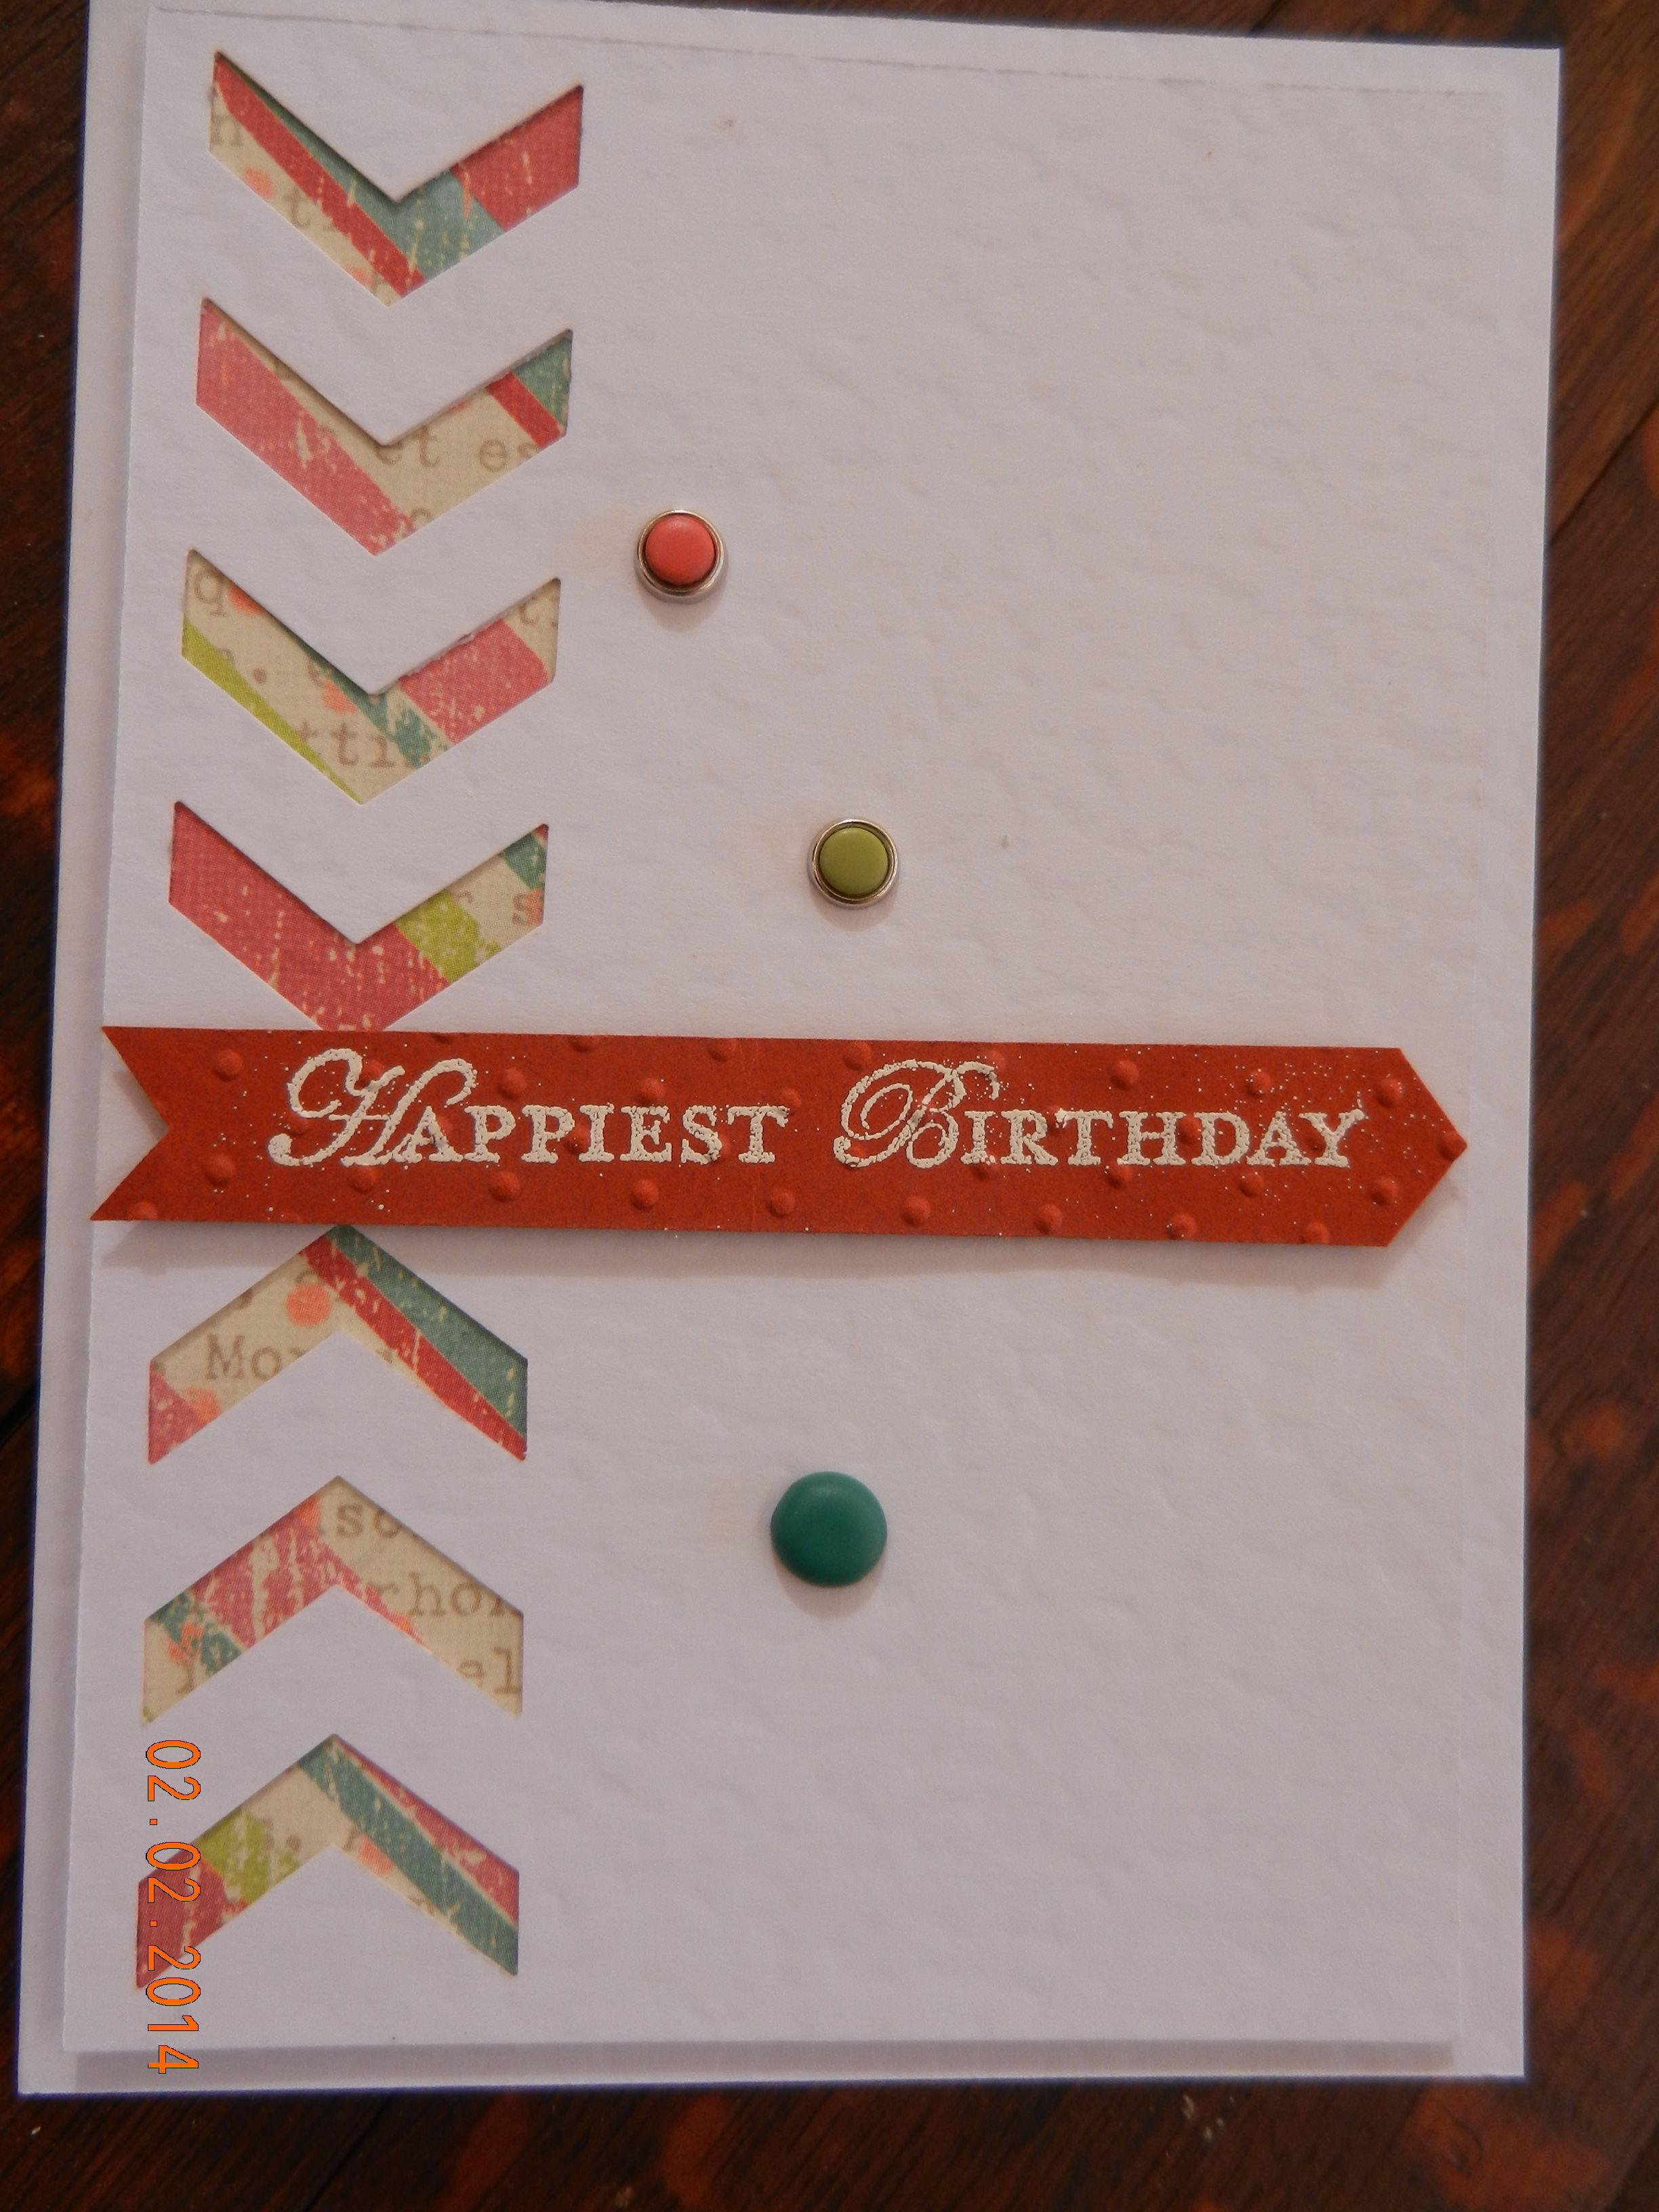 Using the New Stampin Up's Chevron border punch